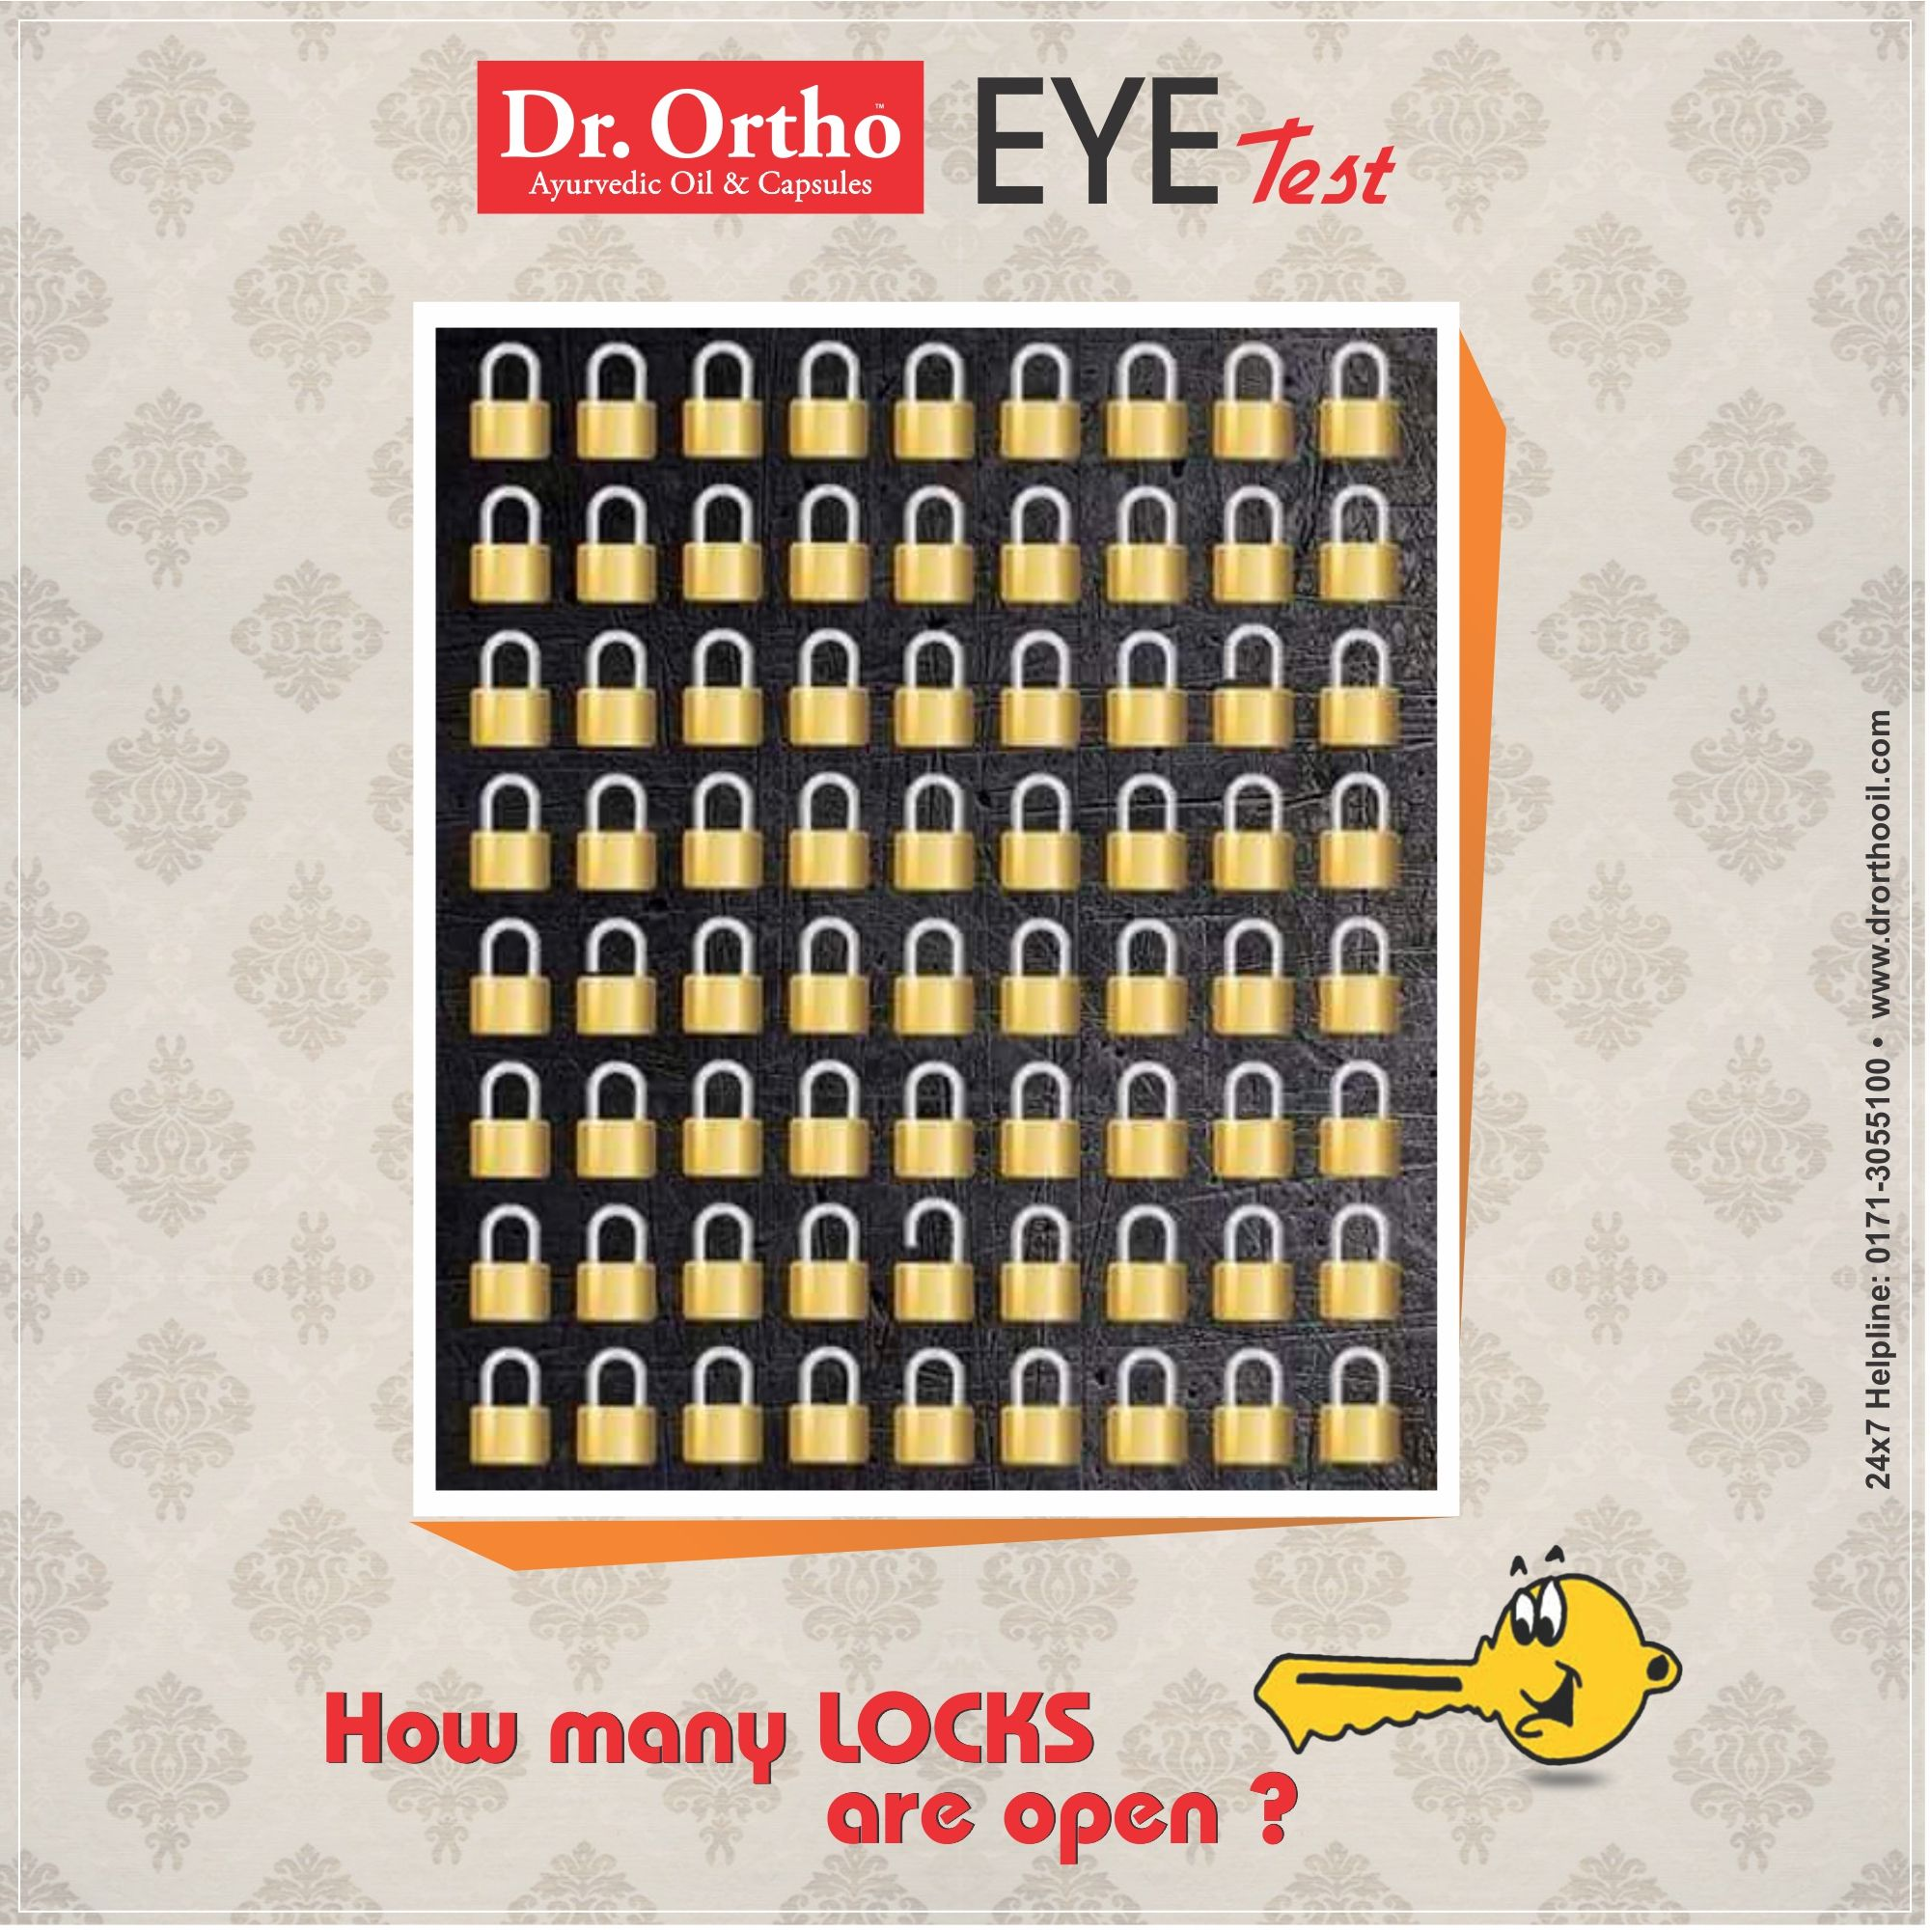 Dr.Ortho EYE TEST How many Locks are Open ? Guess The Right Answer ...